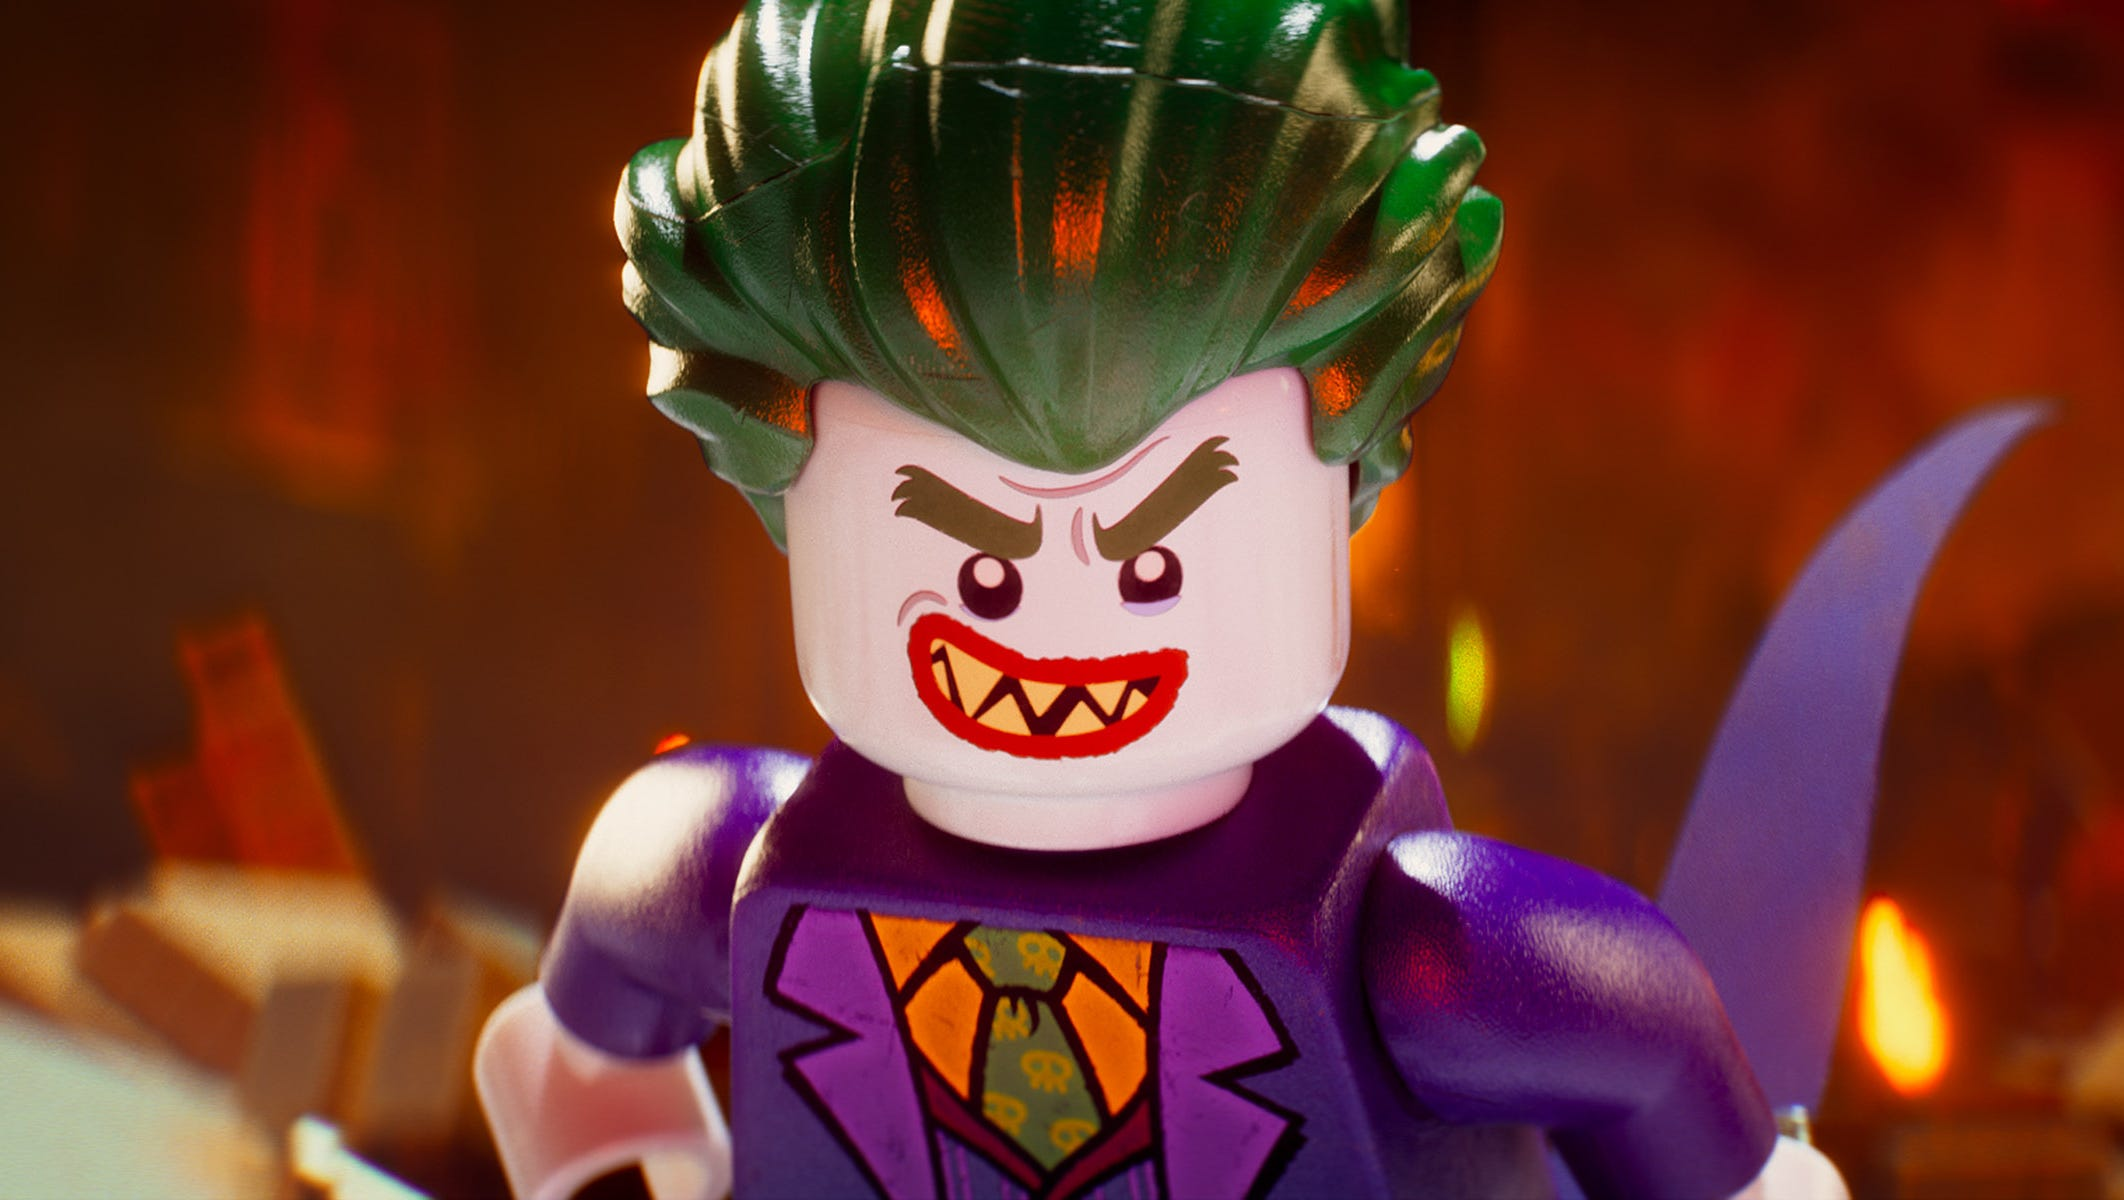 Sneak Peek Lego Batman Movie Reveals Joker Robin